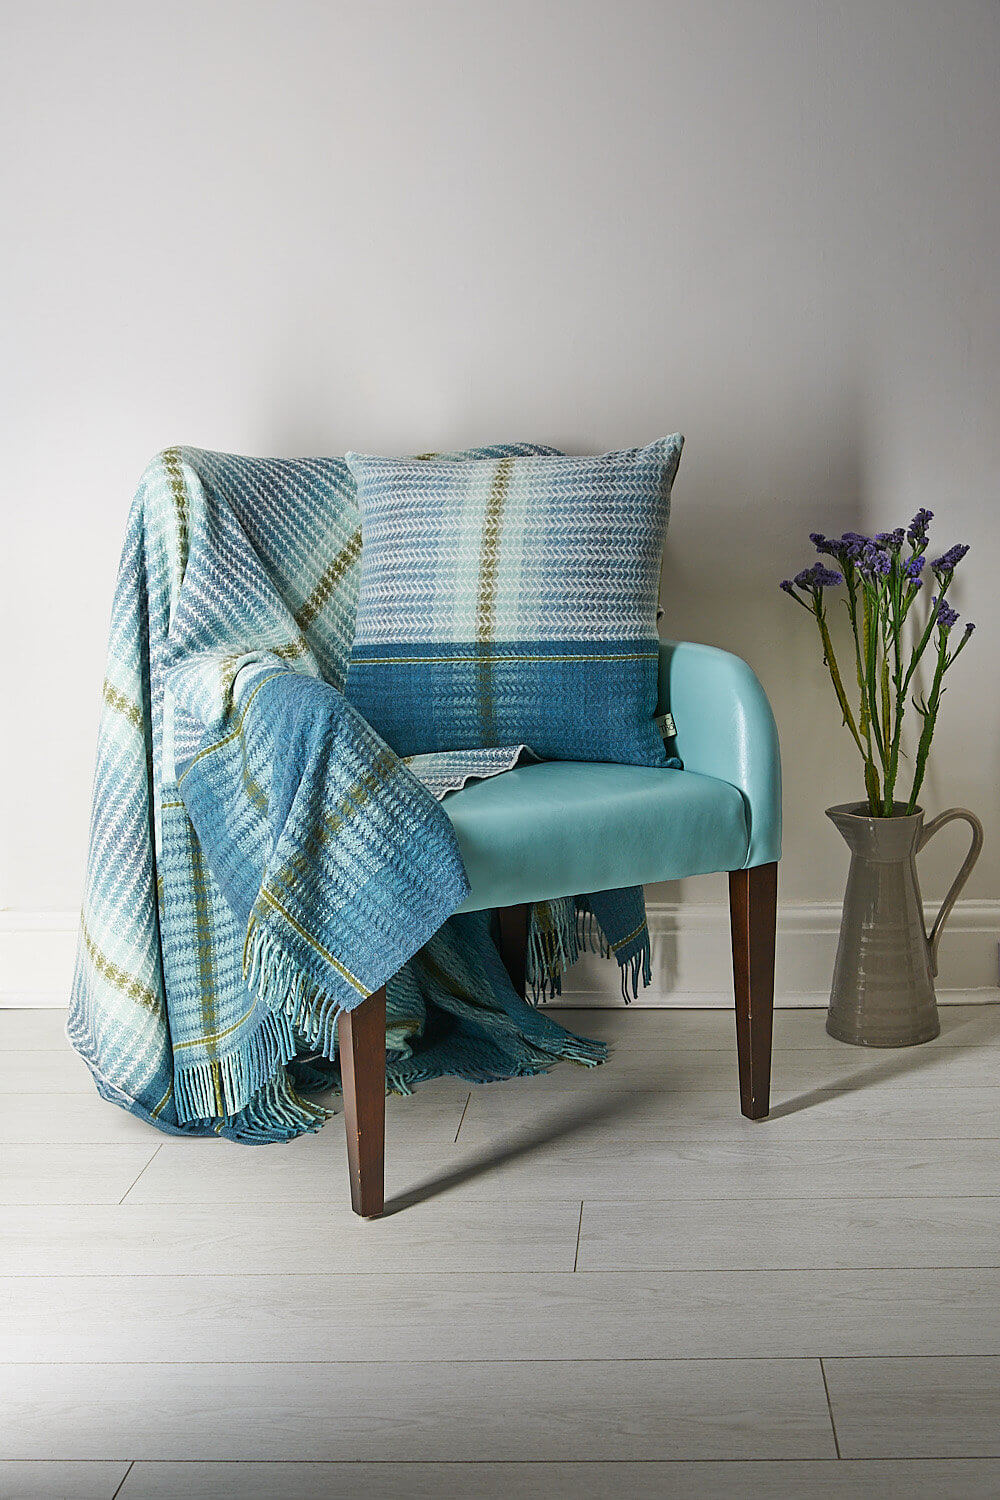 Camilla Thomas textiles throw photographed on clients chair